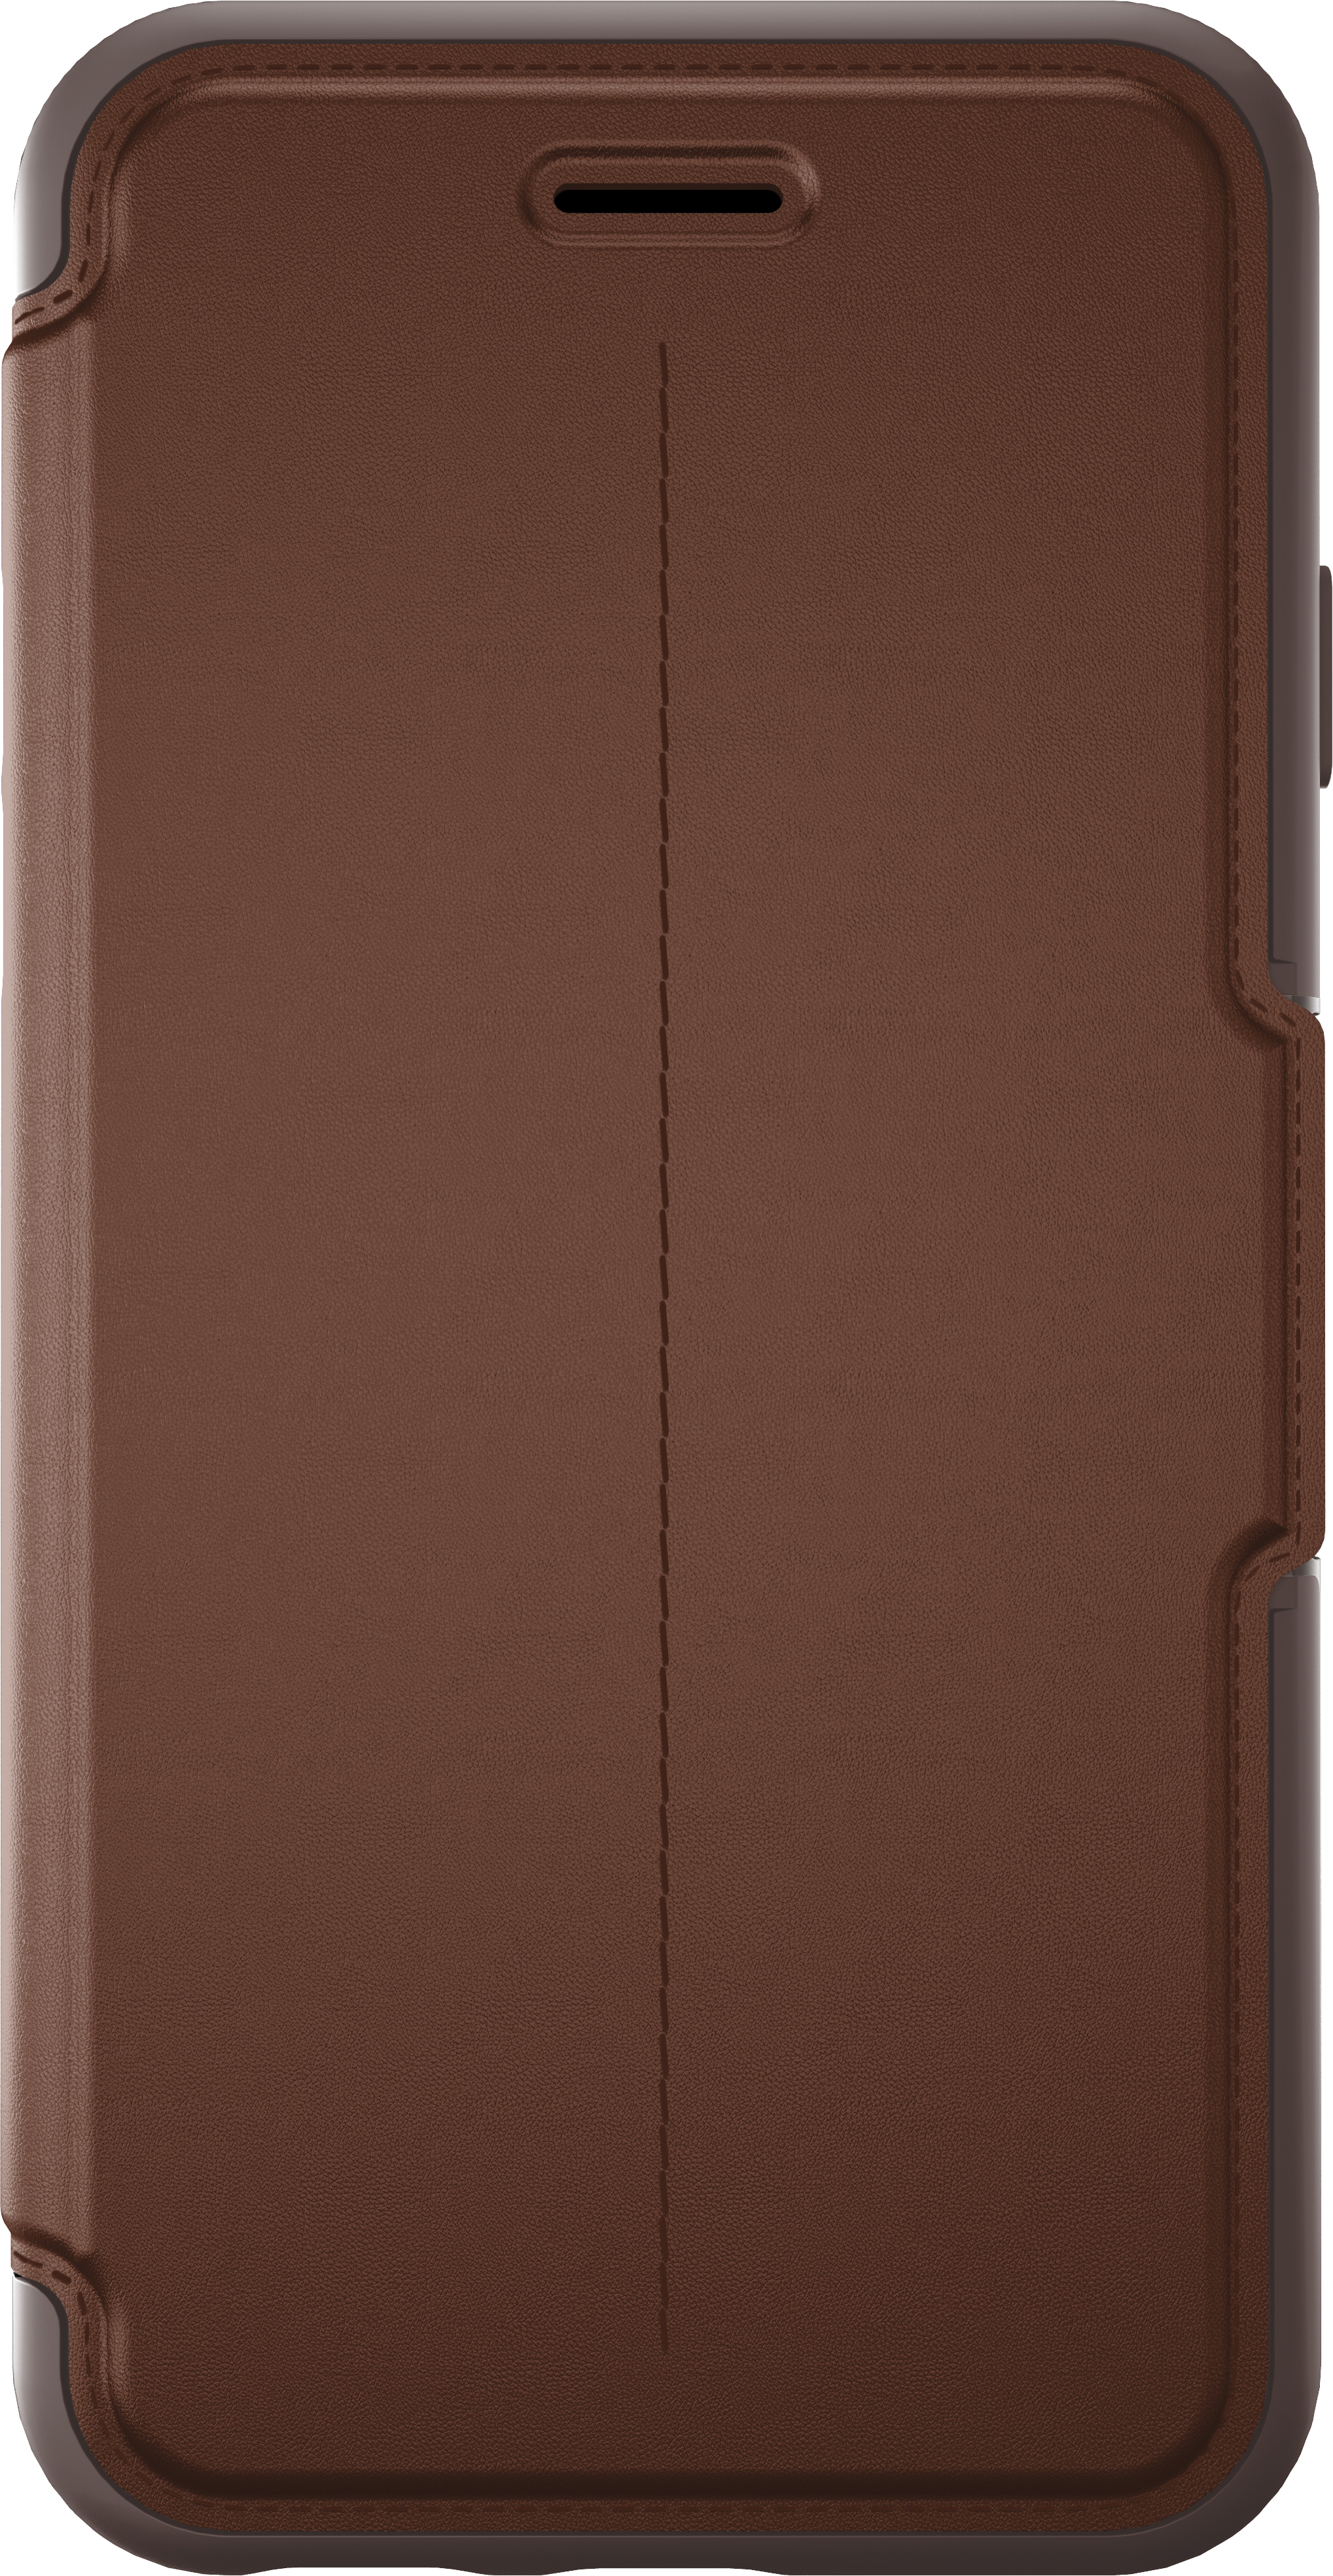 OtterBox Strada Series for iPhone 6/6s